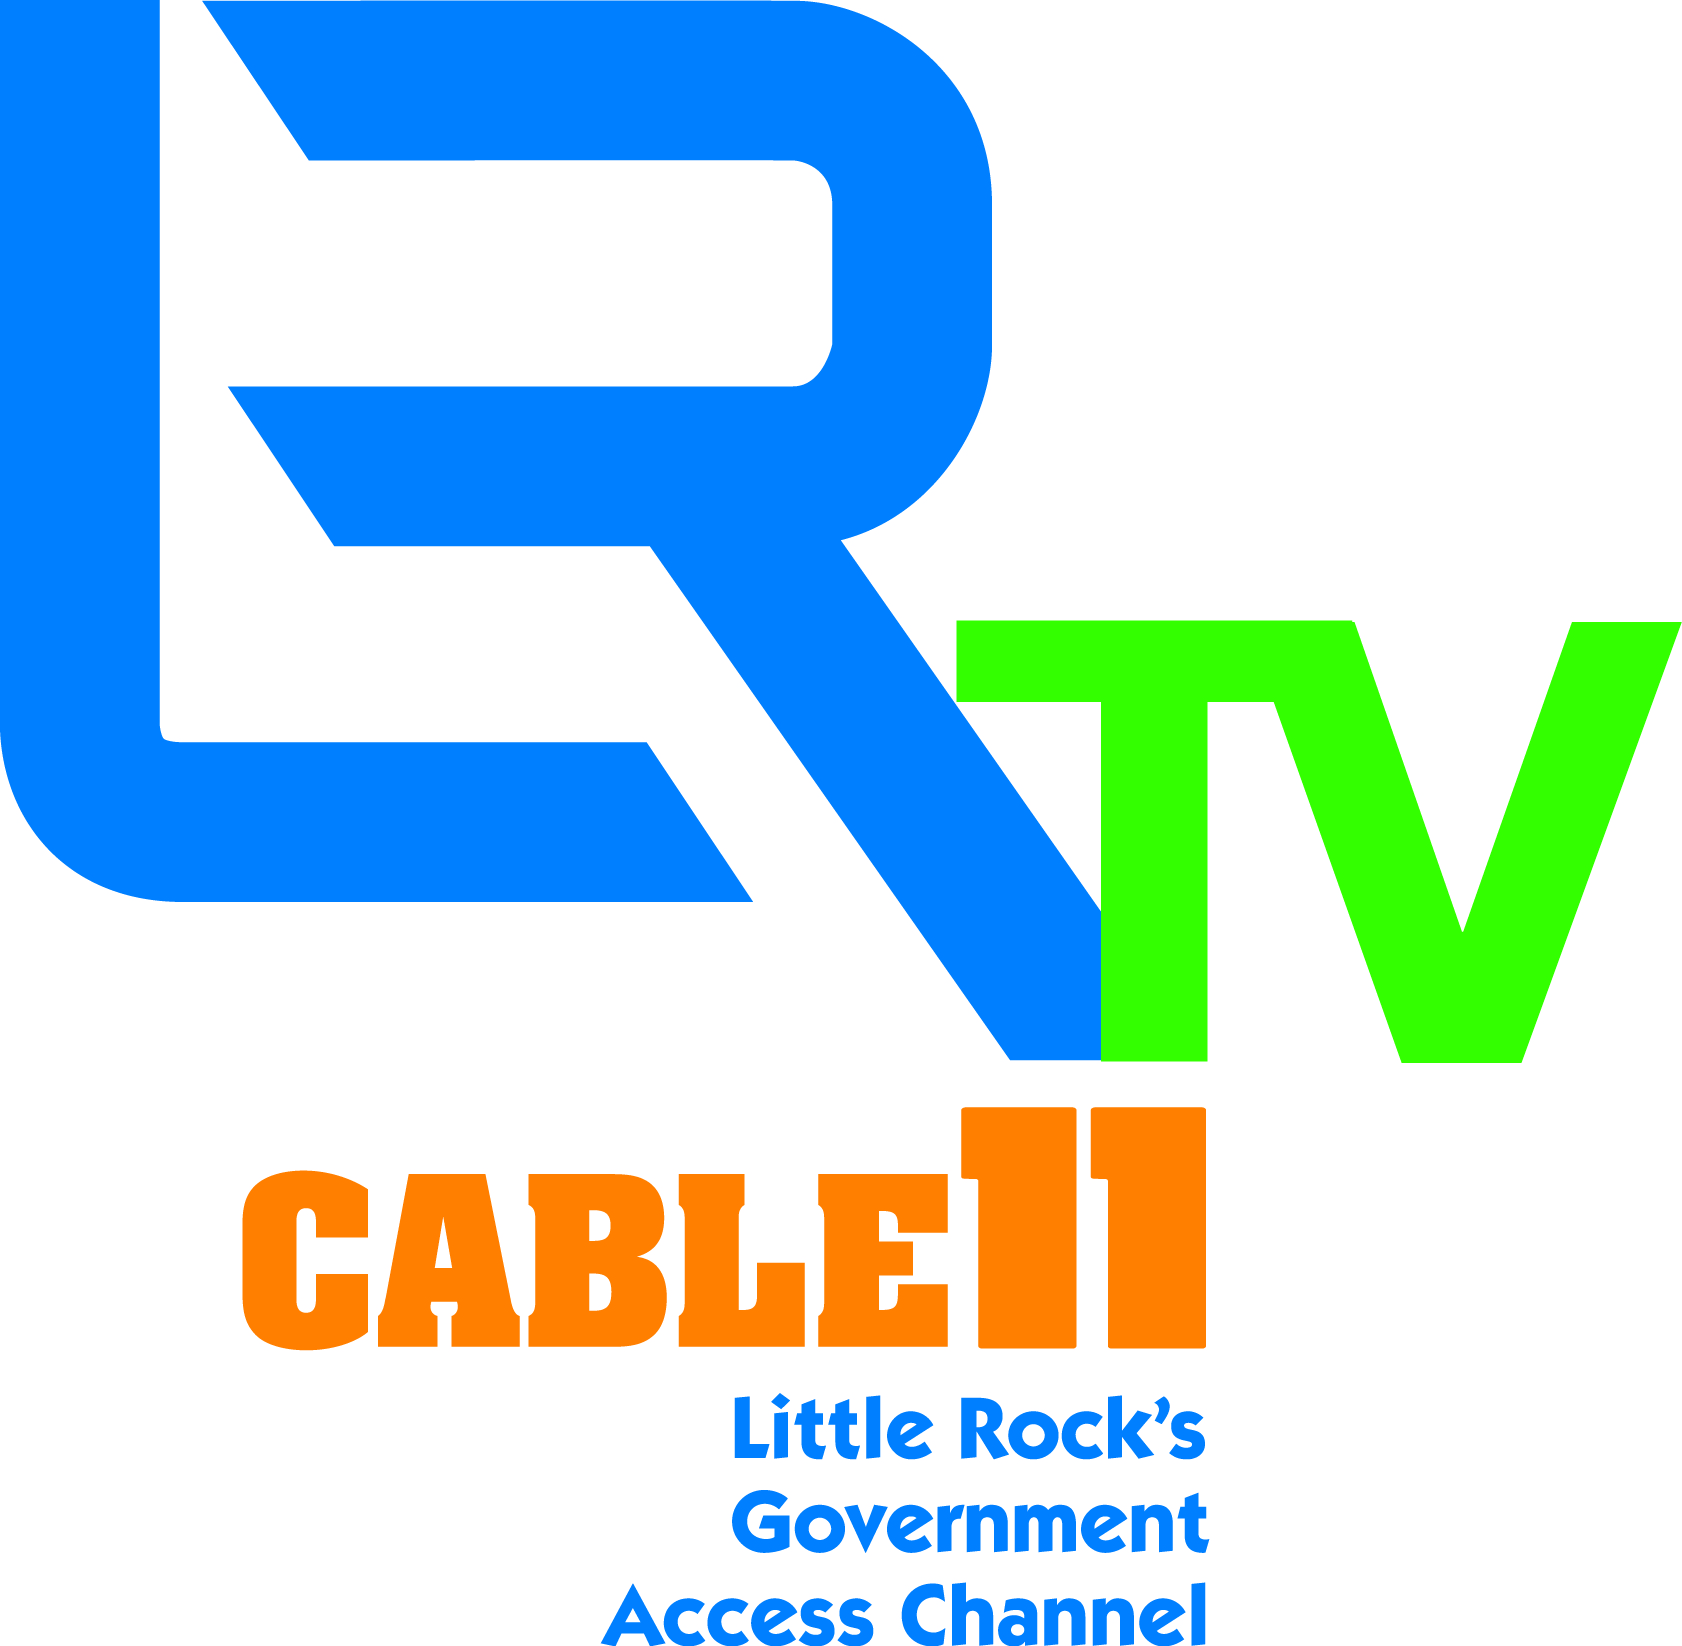 Operating and policy guidelines city of little rock governmental peg access channel as provided for under the cable communications act of 1984 section 531 and the cable franchise agreements platinumwayz